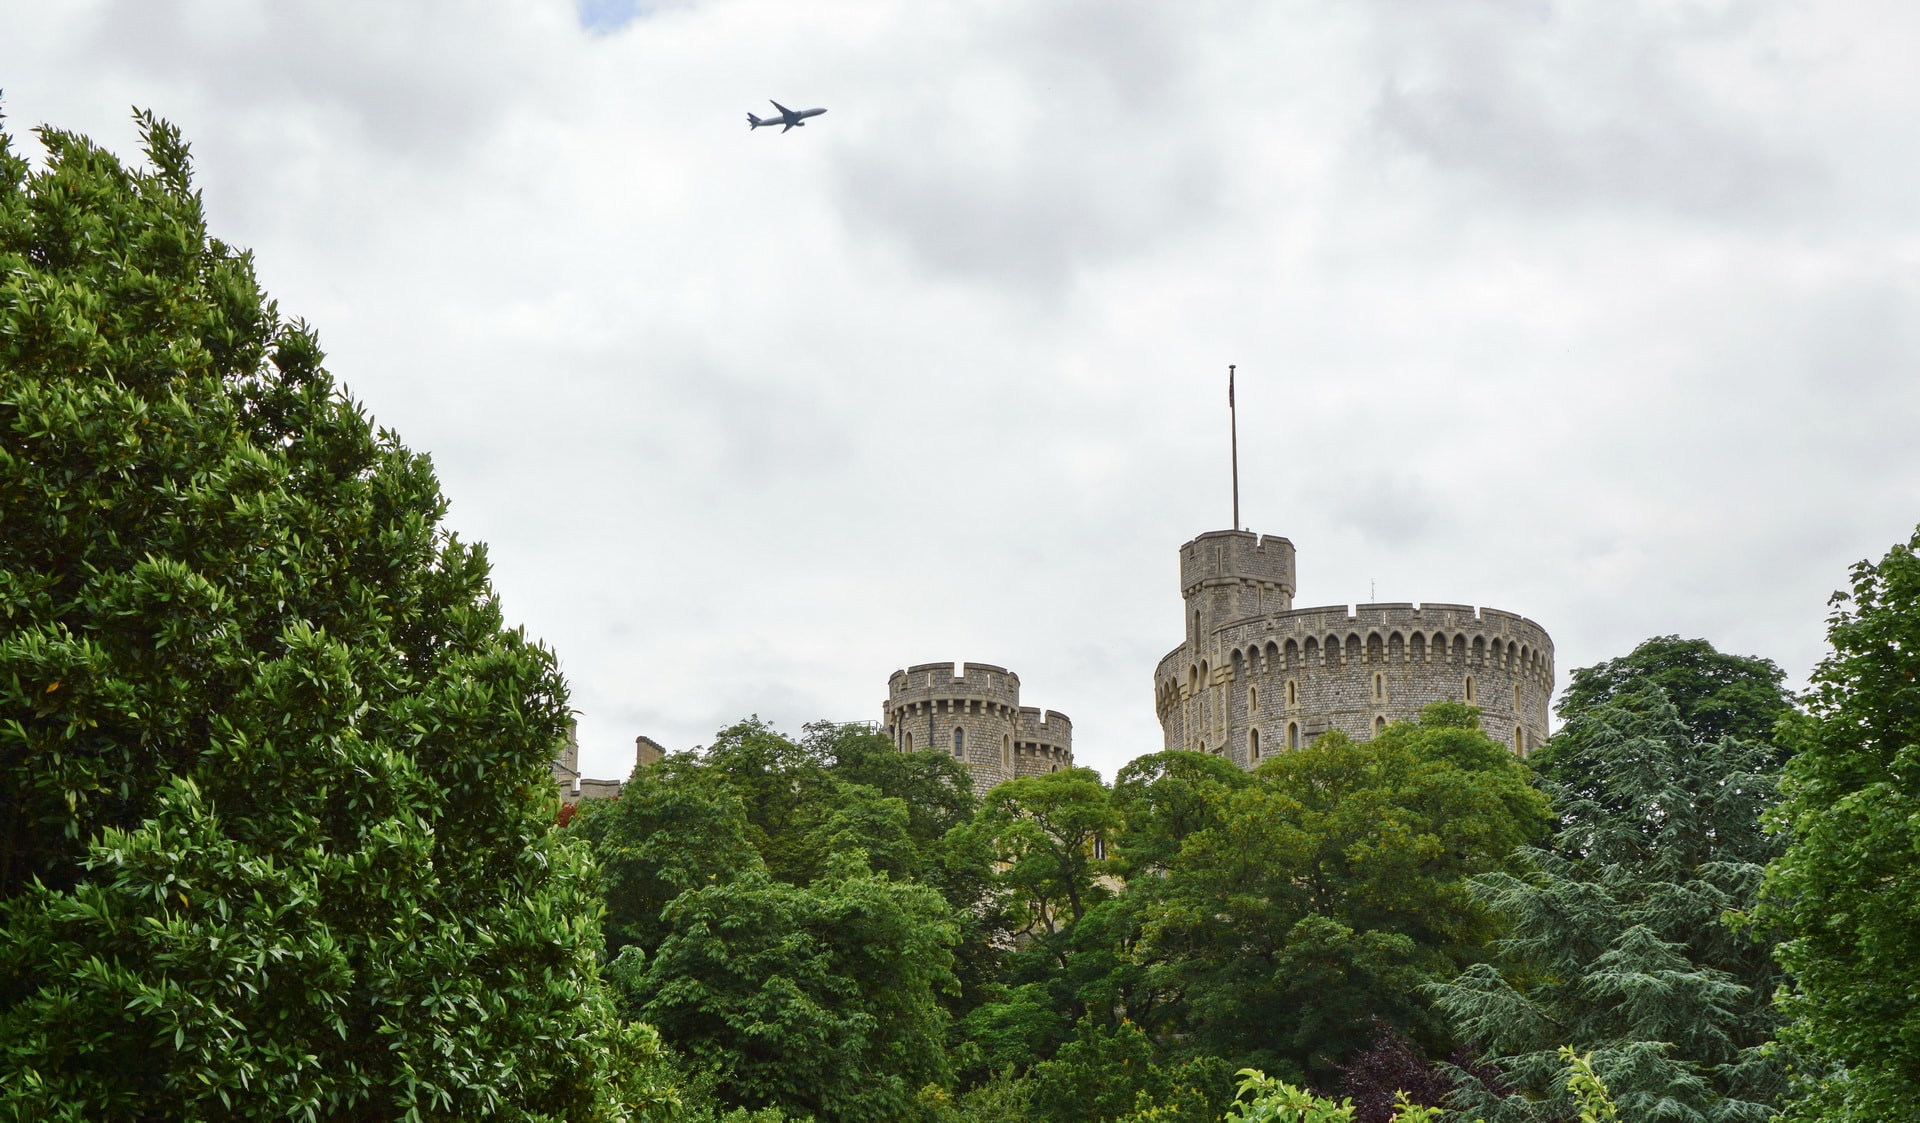 Windsor Castle is located close to Heathrow airport and often pops among trees when looking from the River Thames